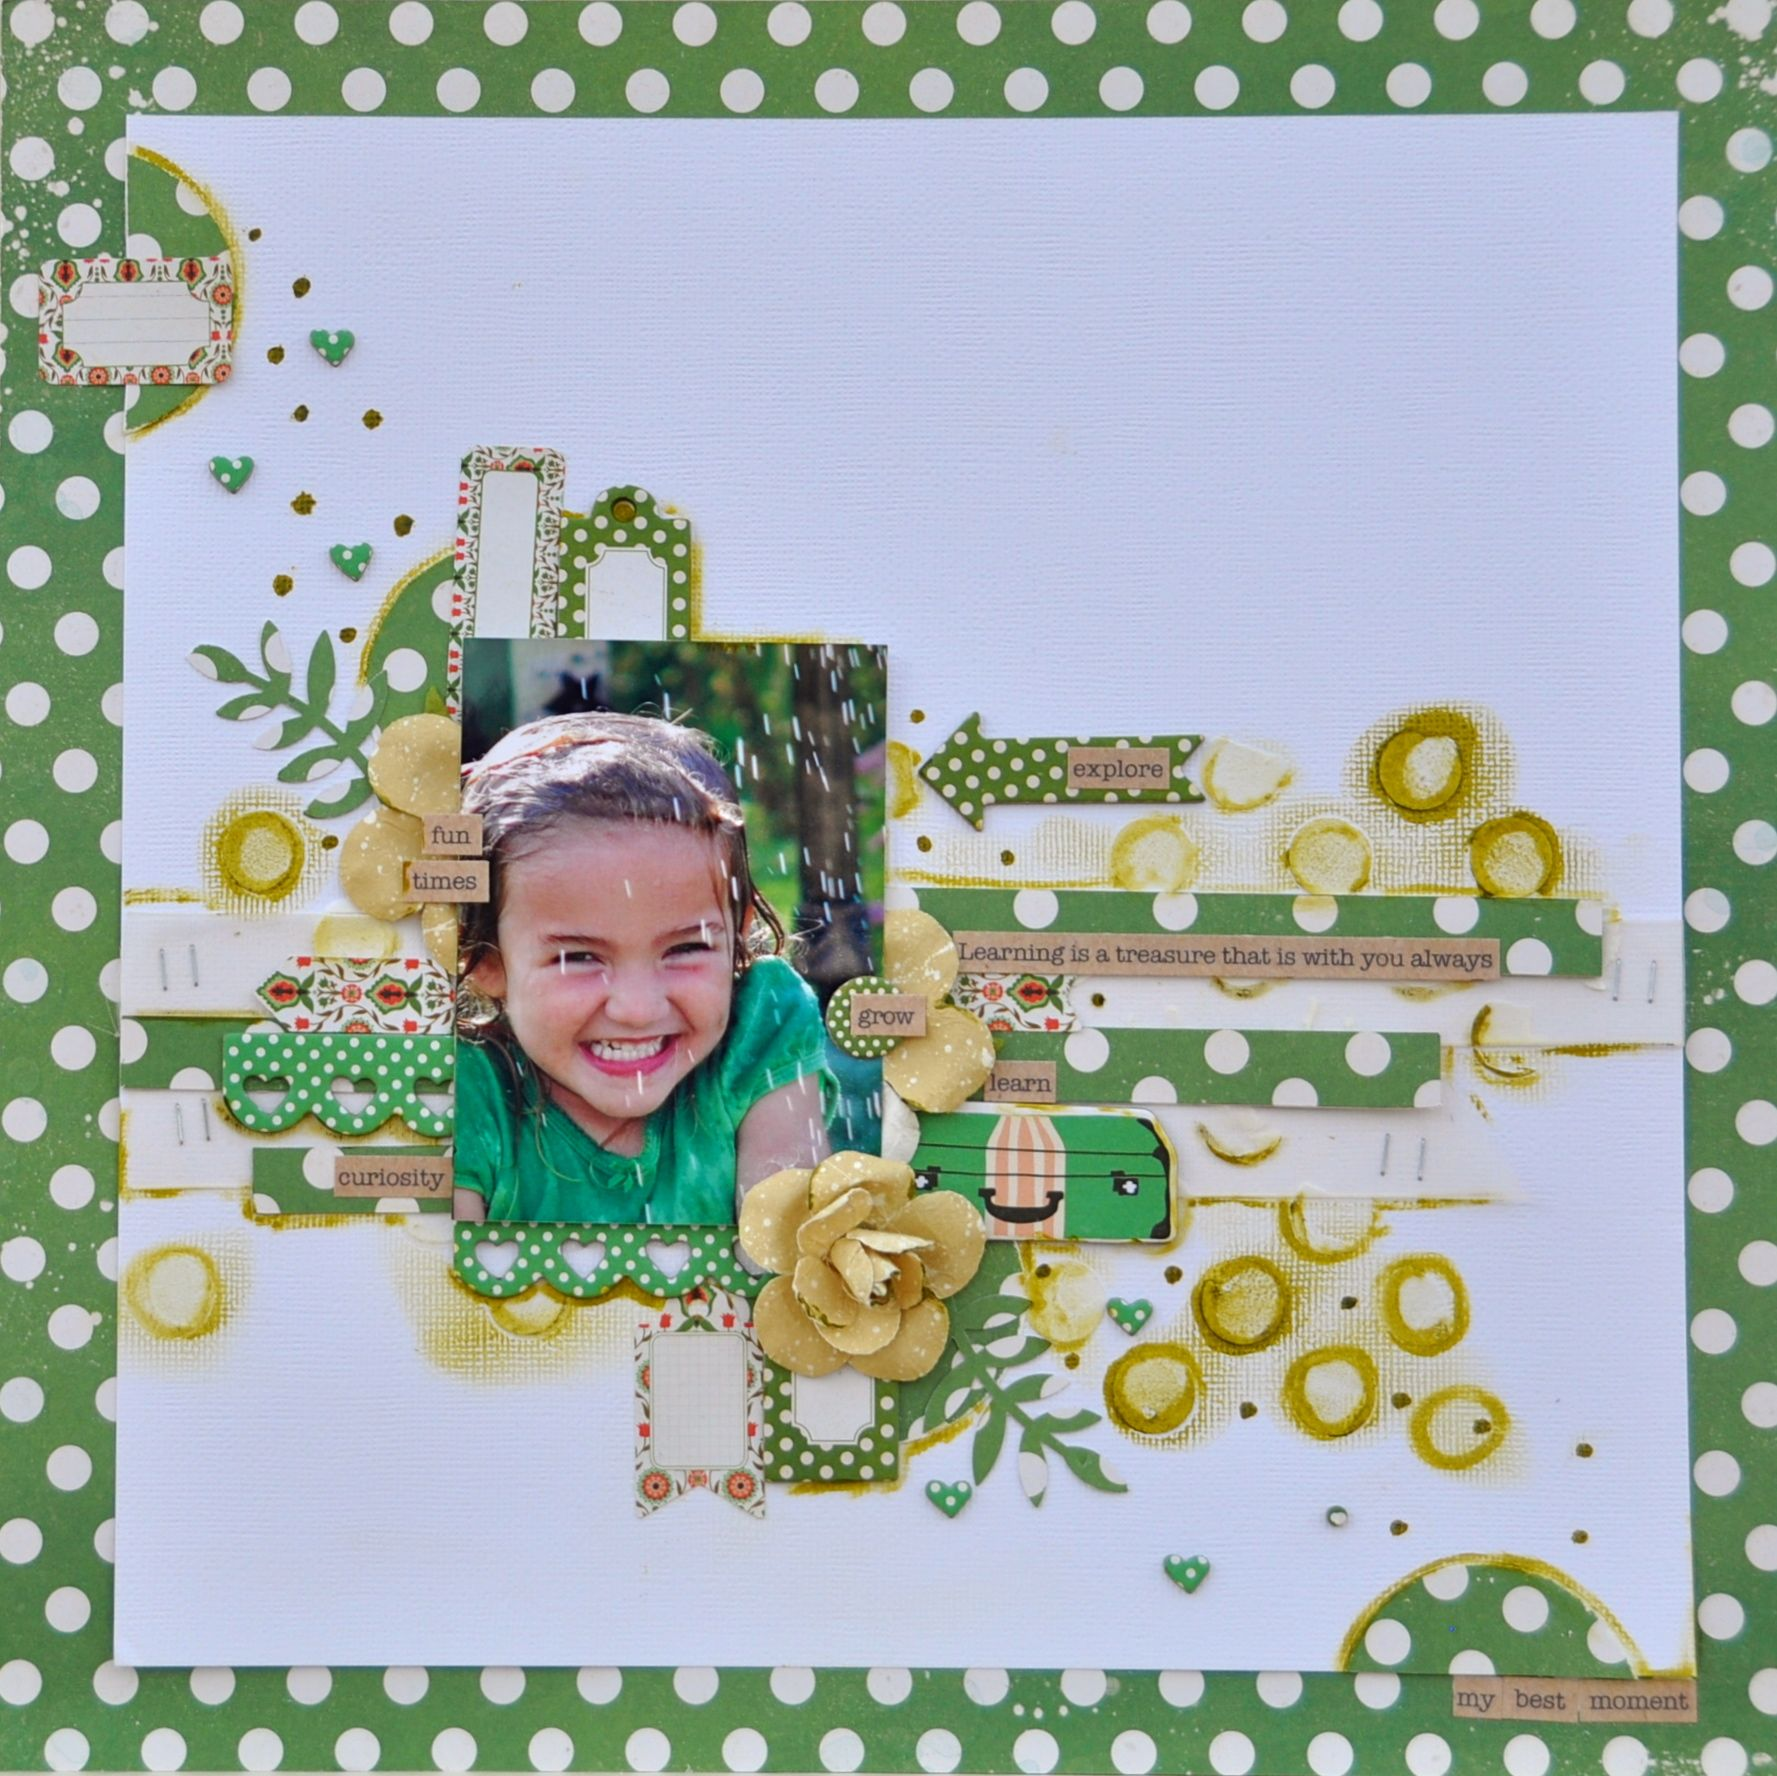 Learning is a Treausure *MCS Main Kit Sept 2014* - Scrapbook.com